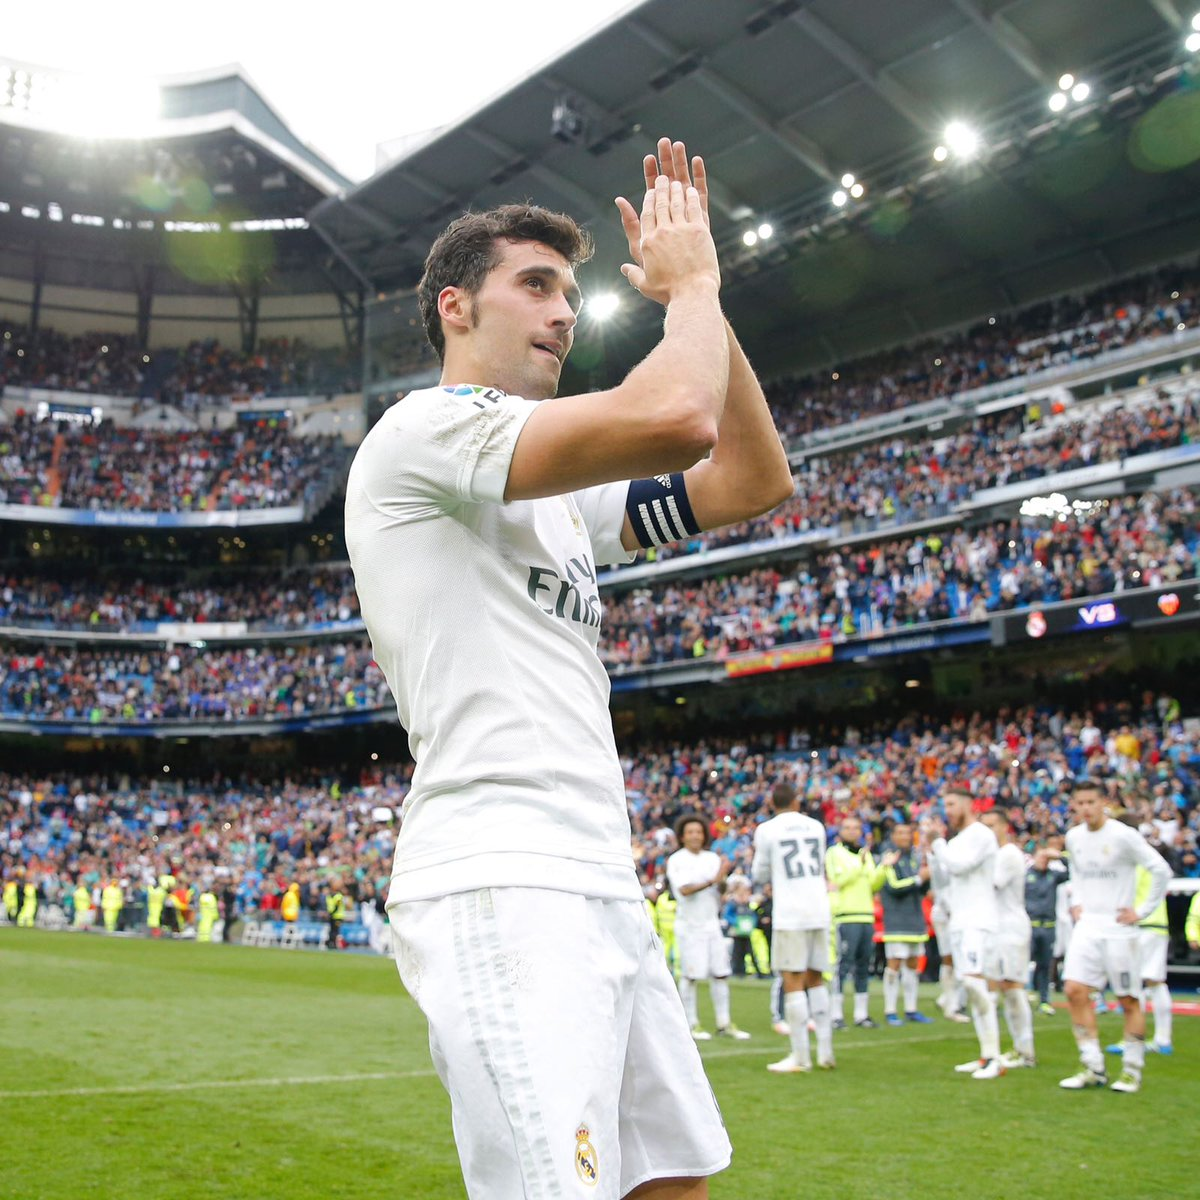 @aarbeloa17 Madridista heart, we are proud that you defended our badge and our shirt.  #RealMadrid <br>http://pic.twitter.com/psBjDbdmGH